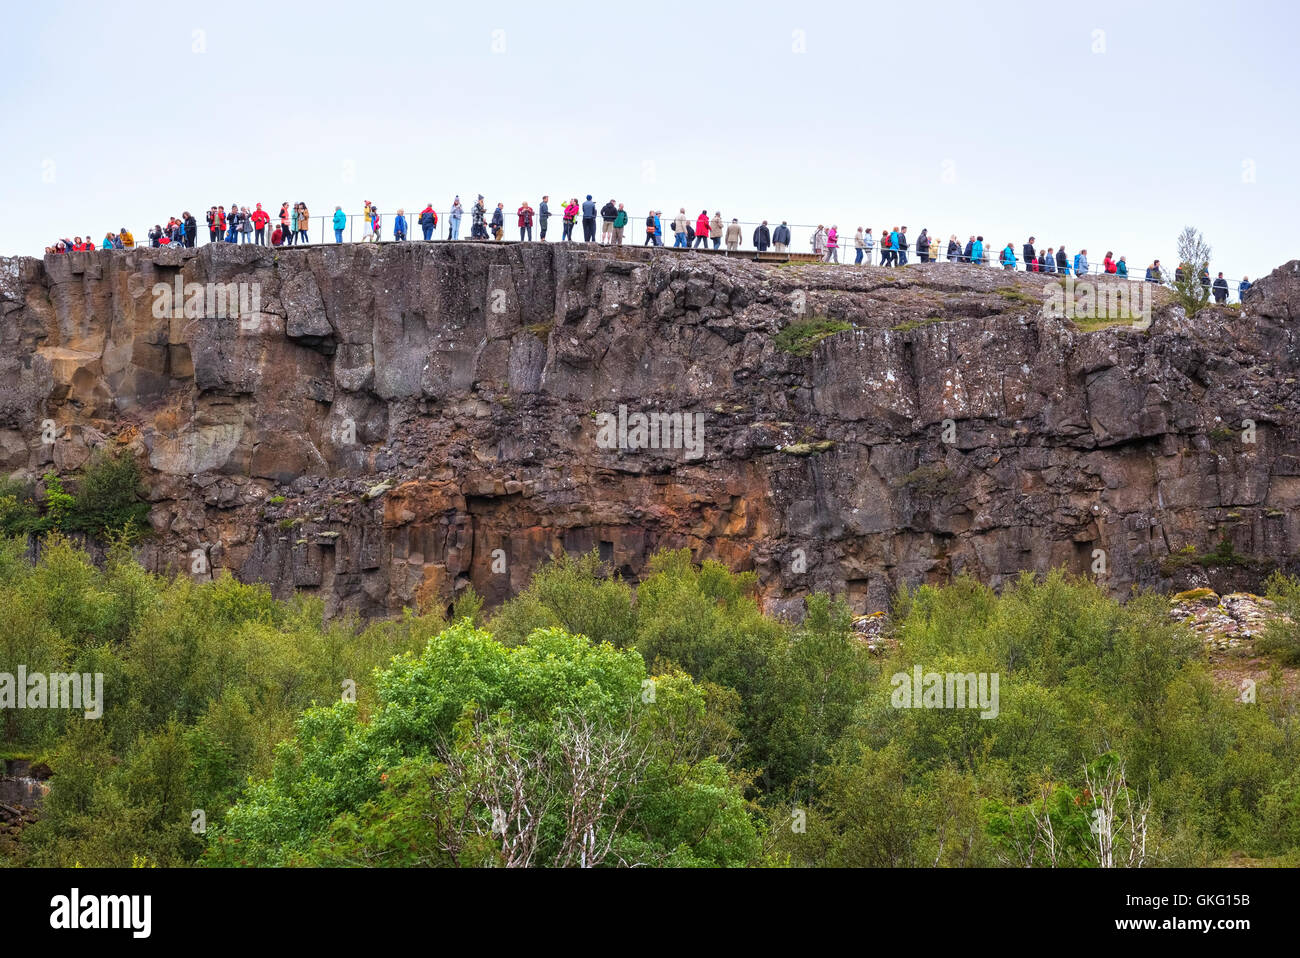 Le tourisme de masse dans le parc national de Þingvellir, Mid-Atlantic Ridge, cercle d'or, de l'Islande Photo Stock